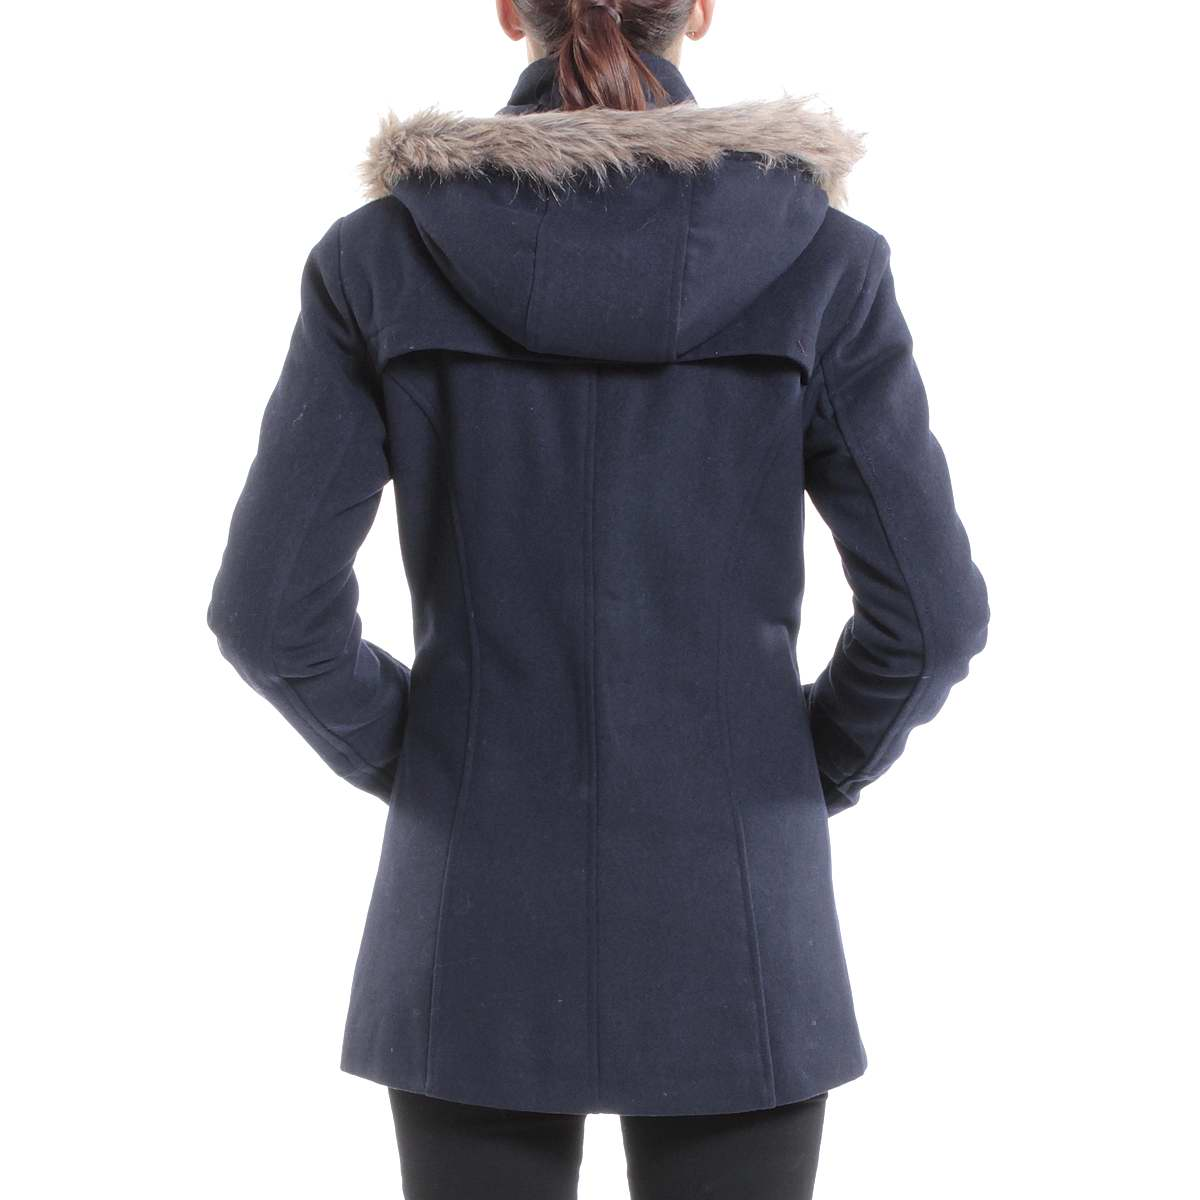 Chadwicks of Boston's classic women's coats, vests and stylish jackets are high on quality and low on price. Get versatile outerwear for women with the details you love, like detachable hoods, flattering seams, dyed-to-match buttons and roomy pockets, in timeless fabrics like wool, leather suede, faux-shearling and more.